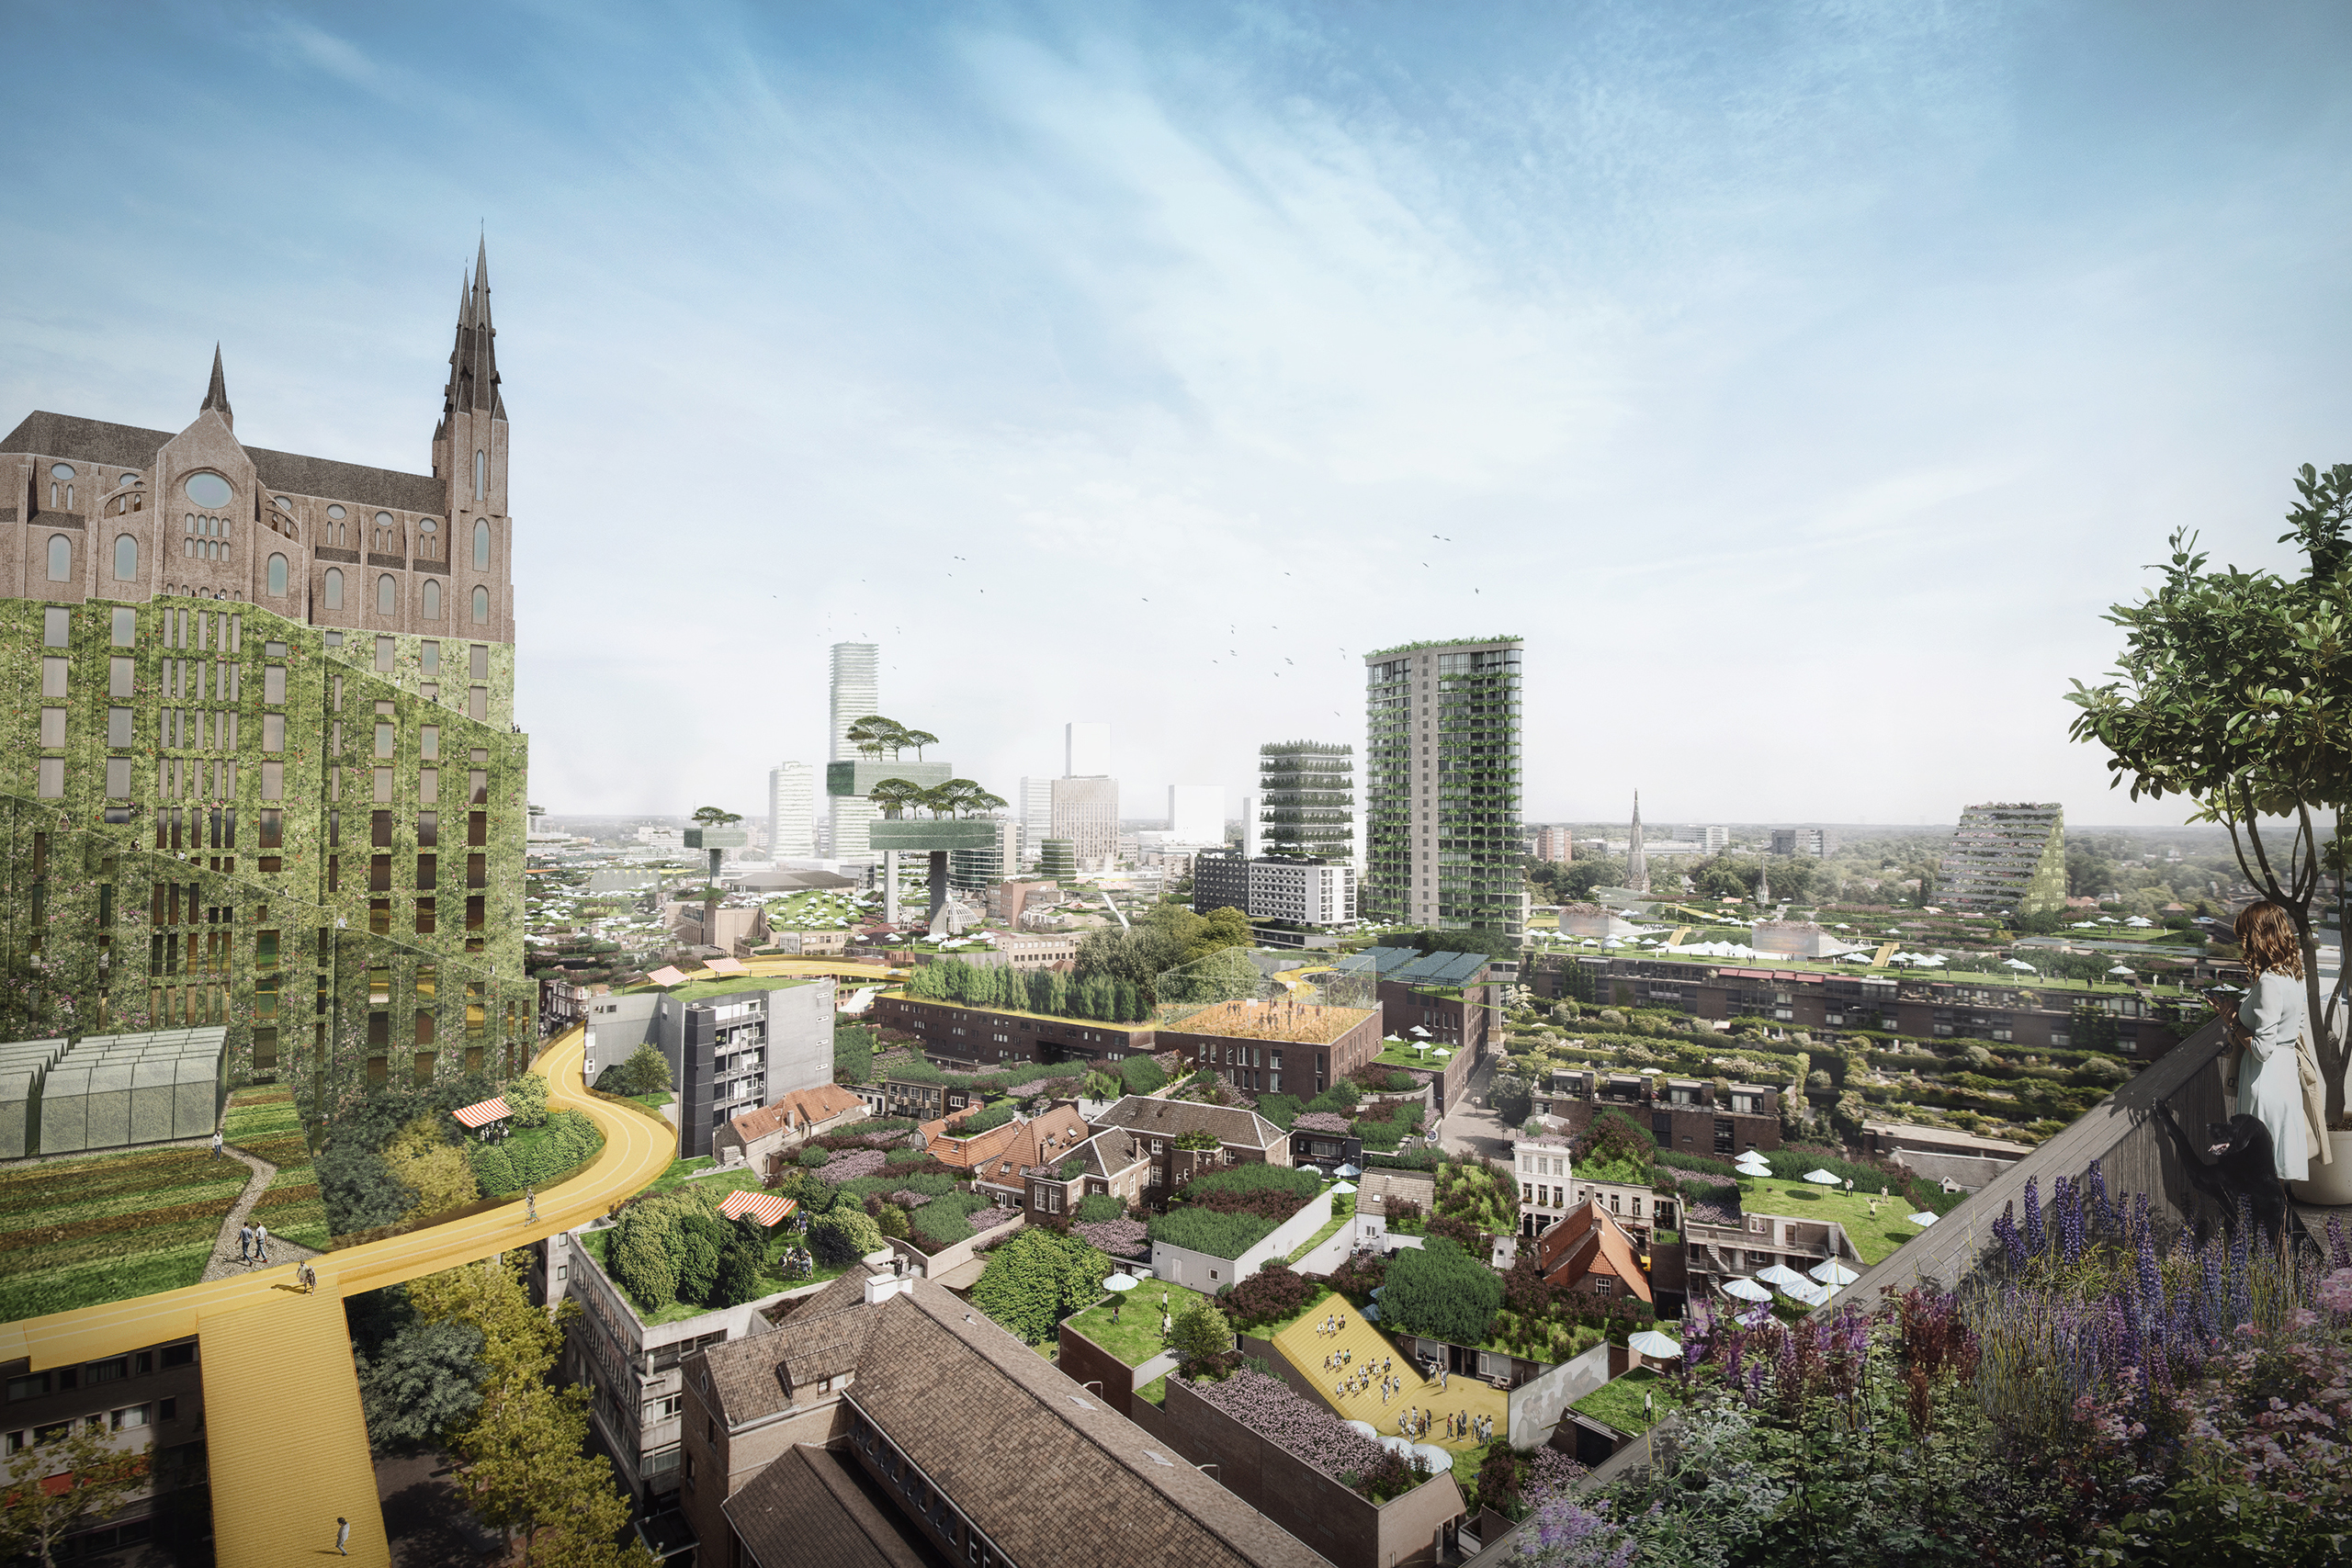 Supervision of Eindhoven City Center